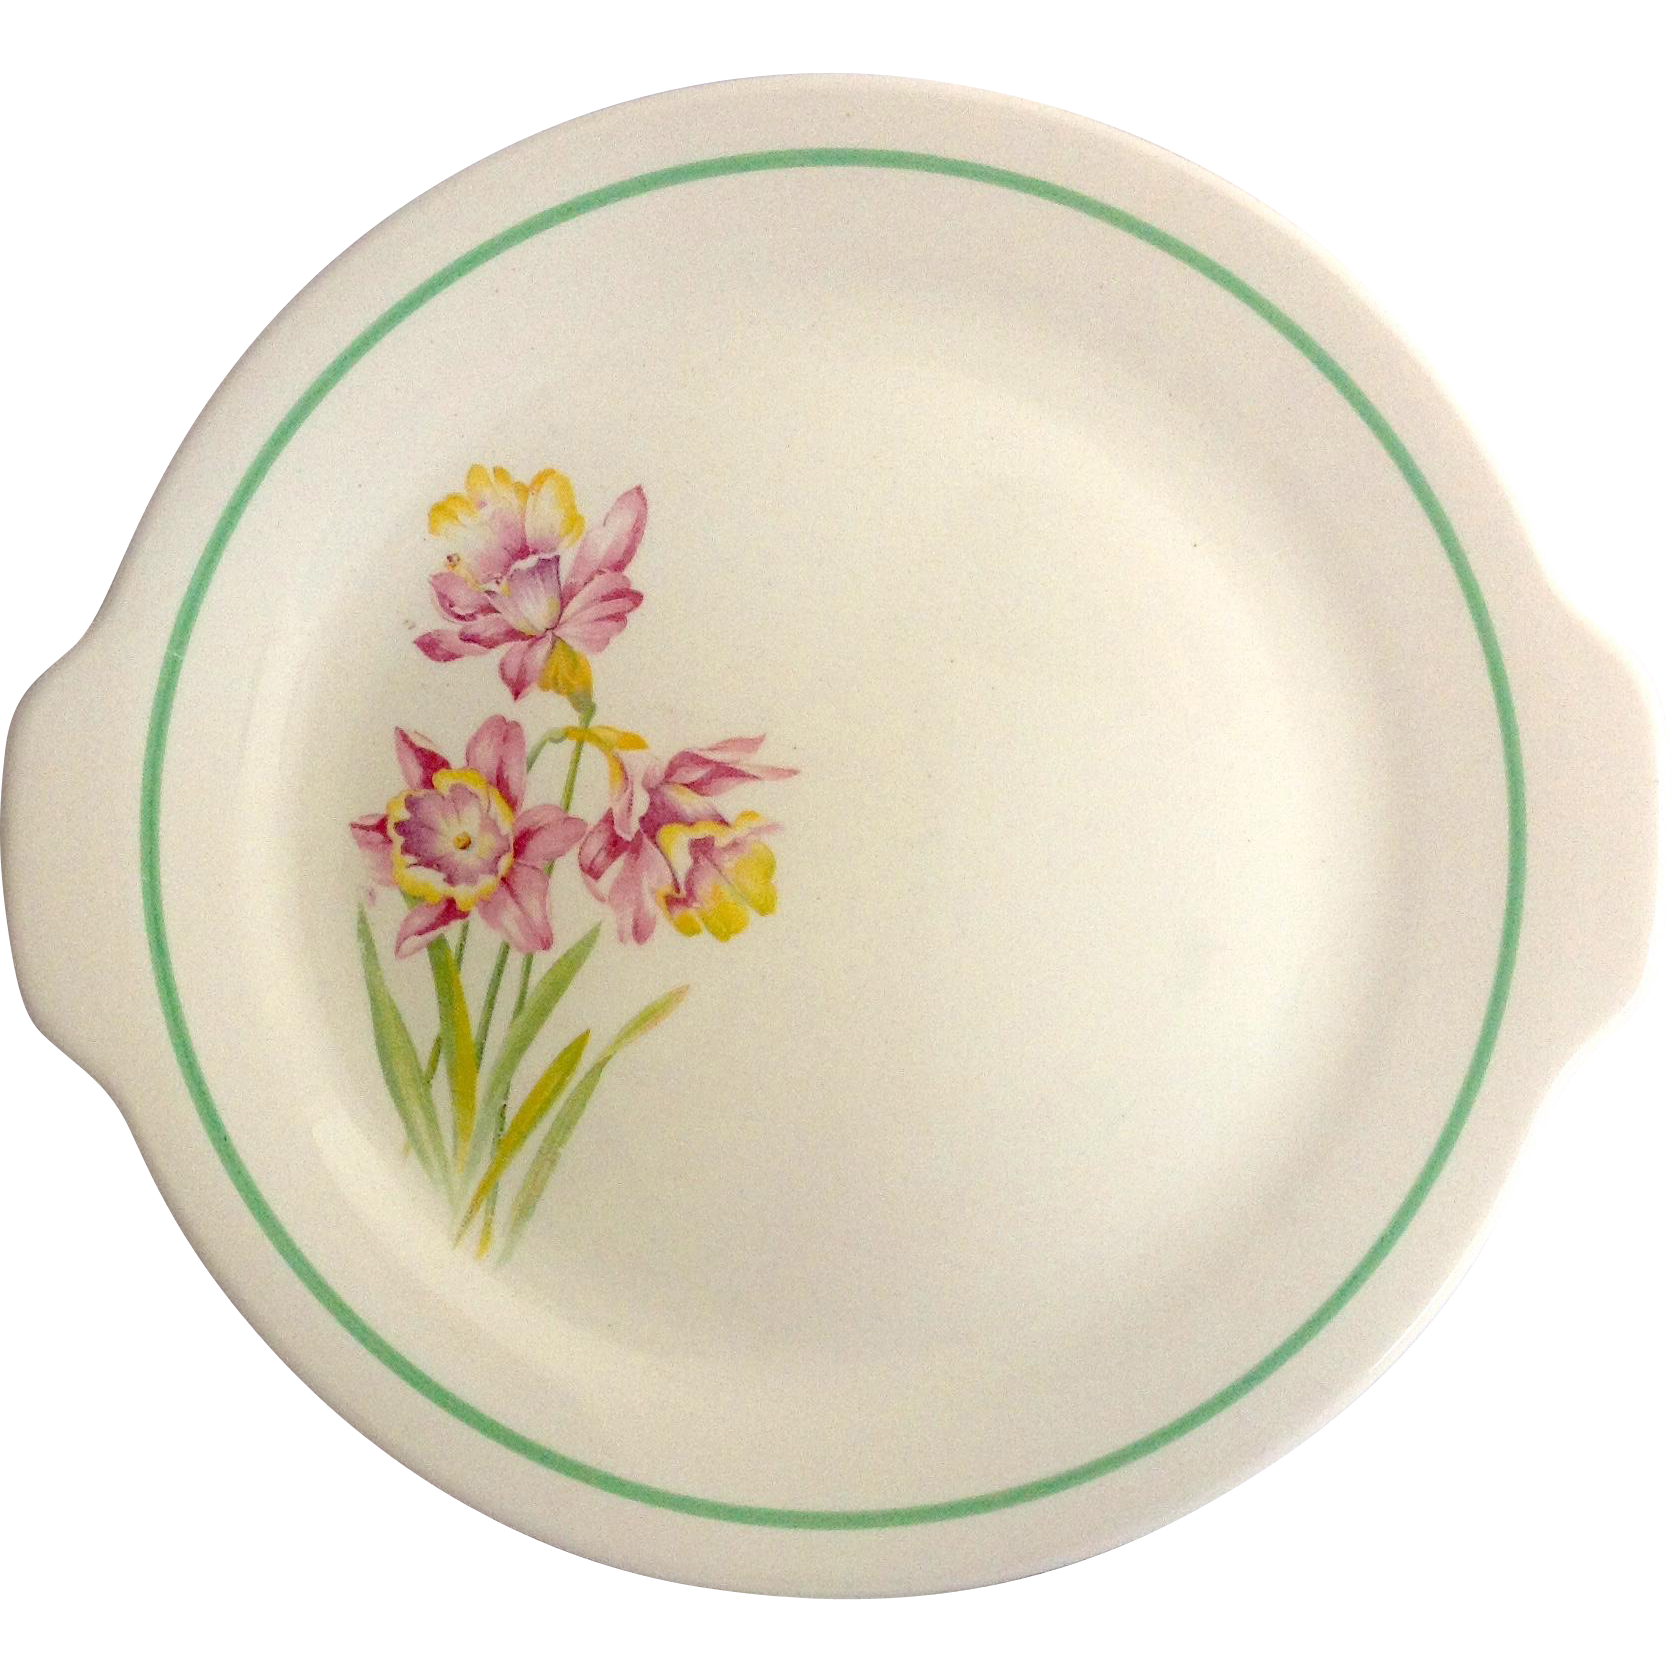 Vintage American Two Handled Serving Plate with Pink Daffodils